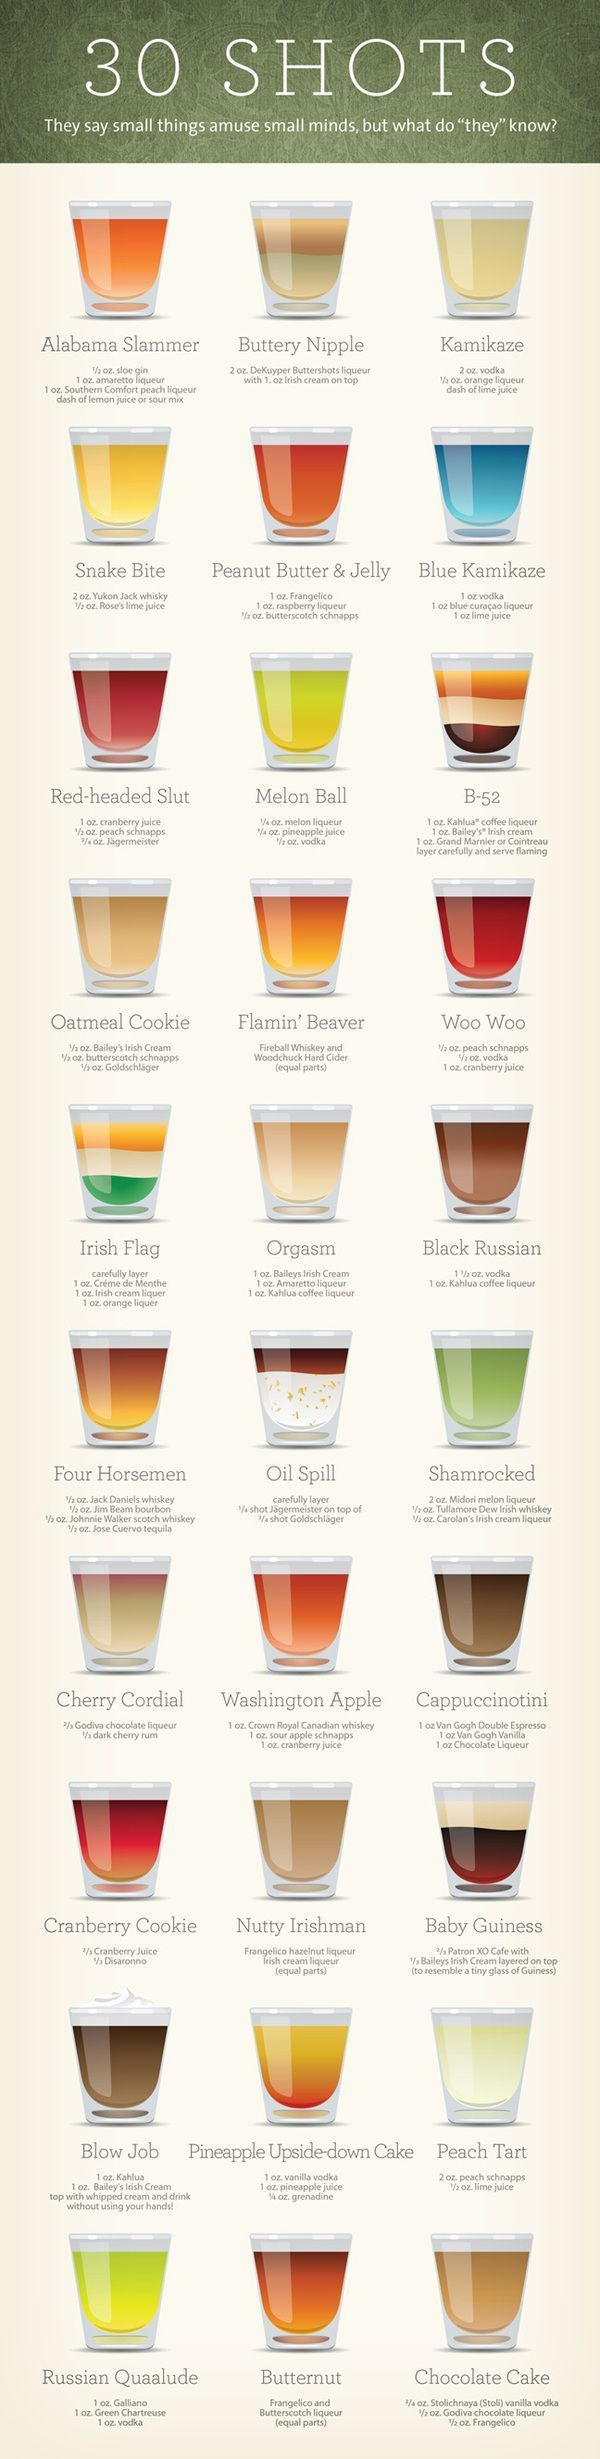 Infographics are best way to remember the most important information - like cocktail recipes! | From trendyimageobsession